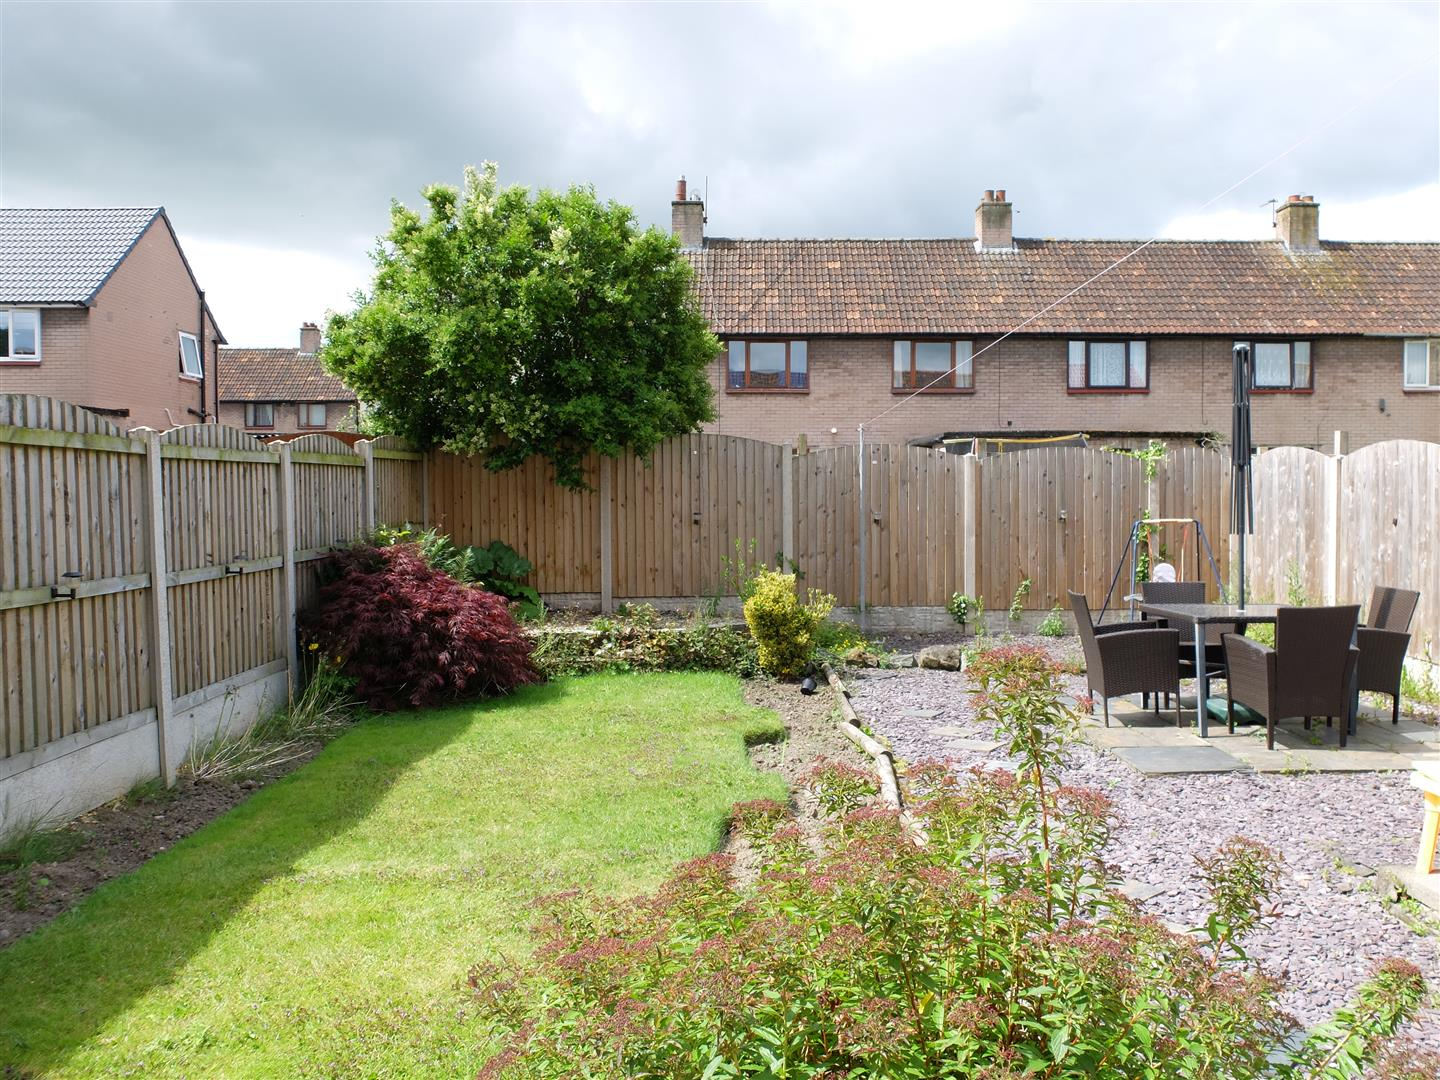 3 Bedrooms House - Mid Terrace For Sale 10 Dalegarth Avenue Carlisle